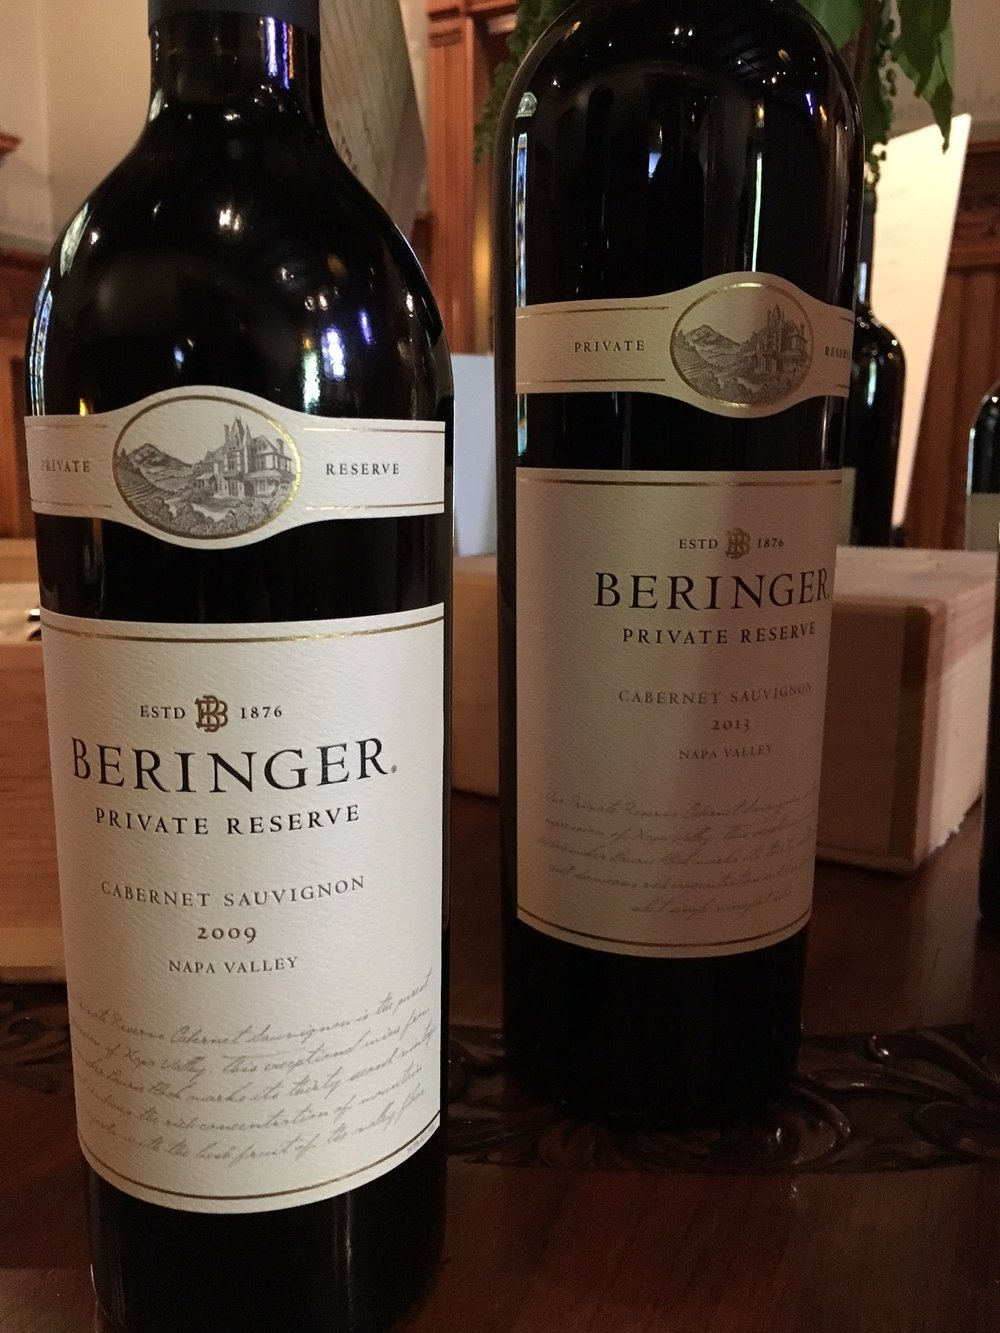 Beringer has gained an international reputation for their world class 'Private Reserve' Cabernets.